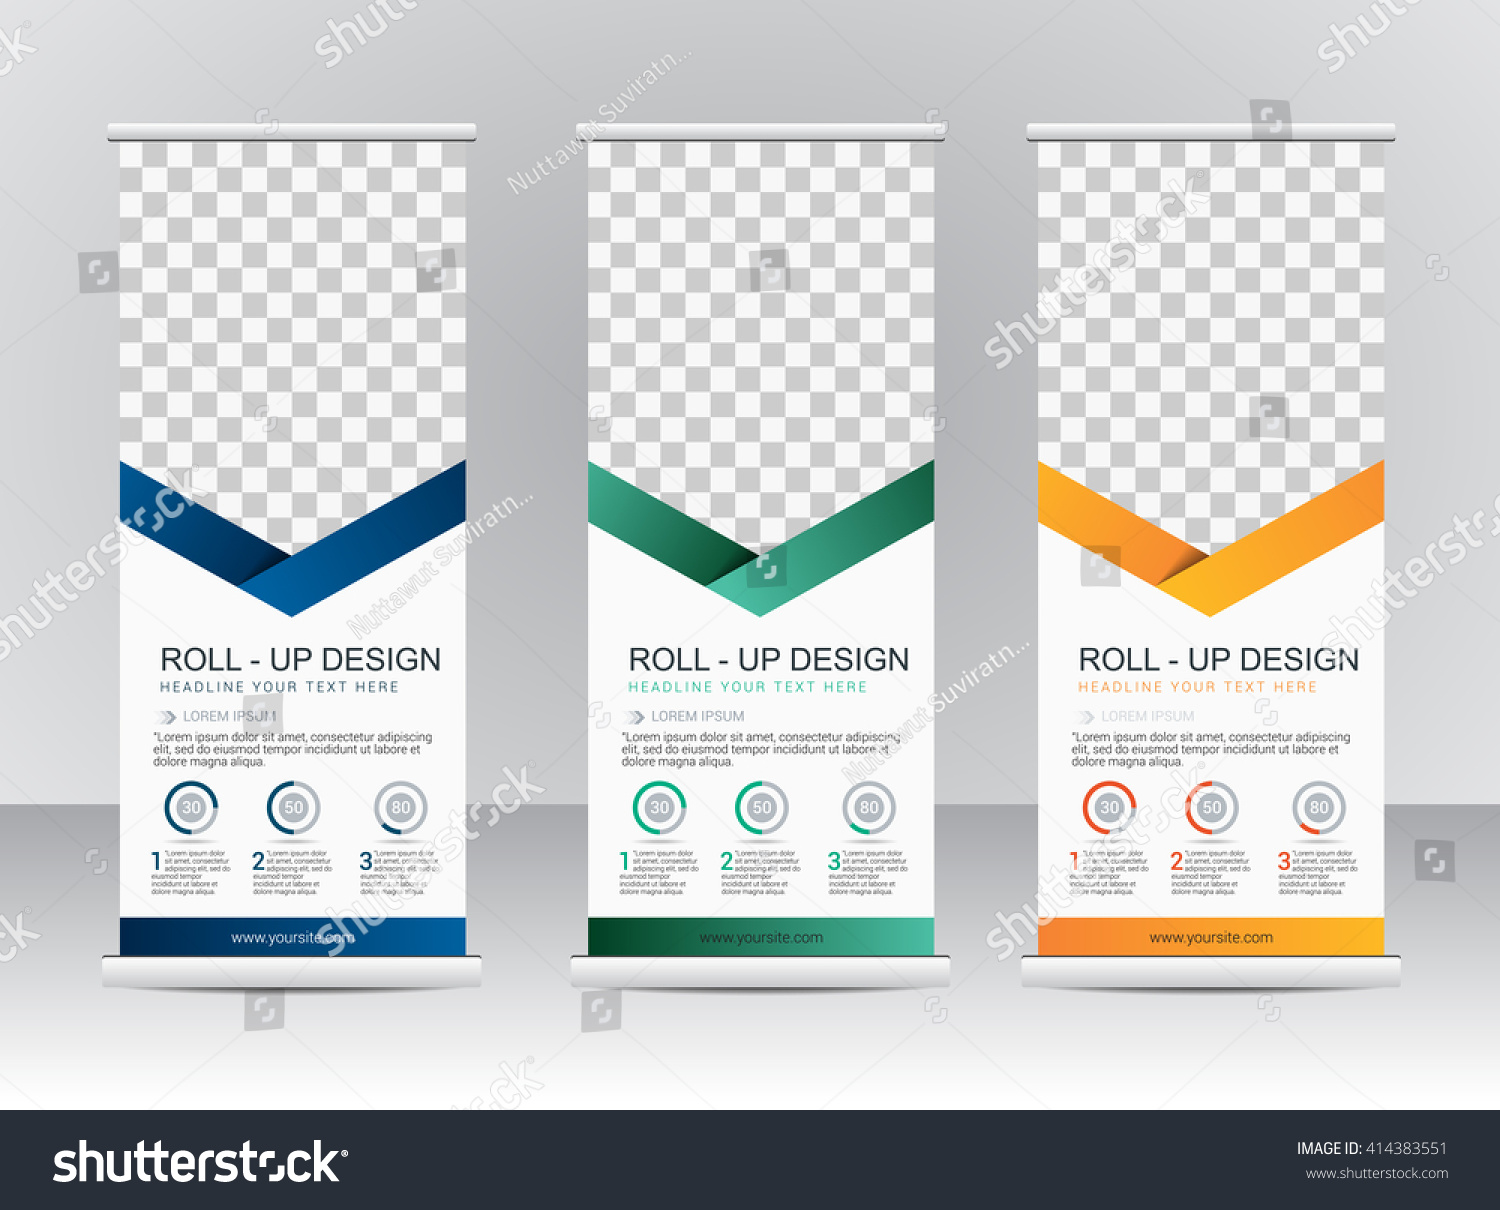 Blank Exhibition Stand Vector : Roll banner stand template design stock vector